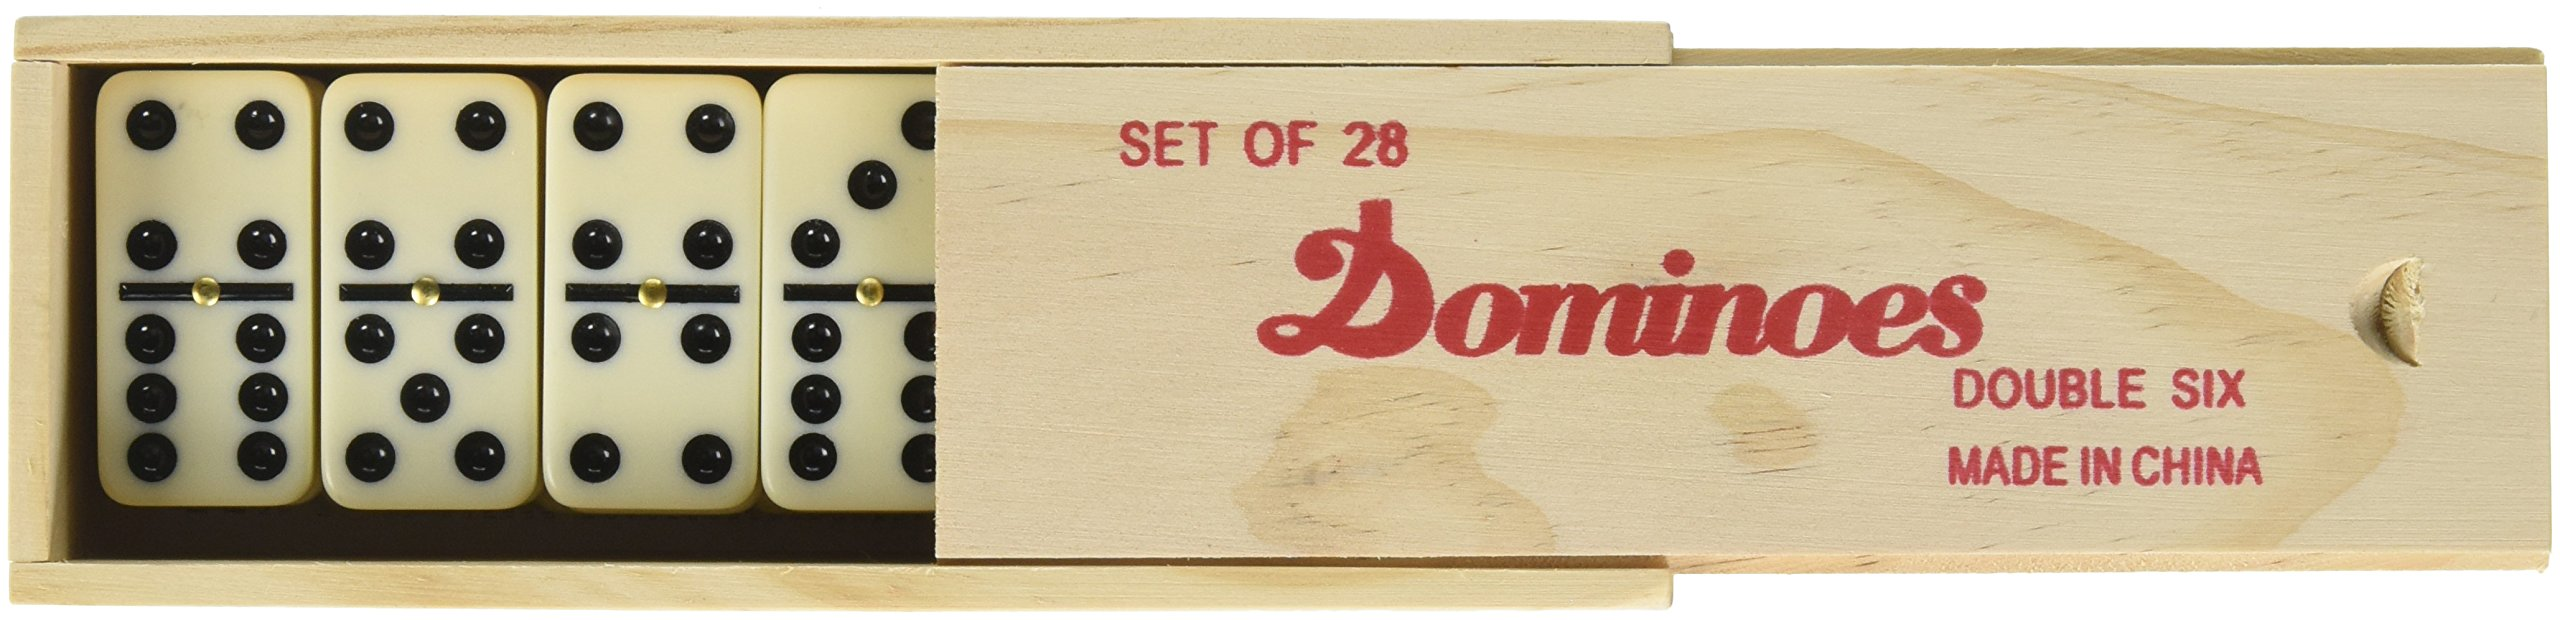 Double 6 Professional Domino Tiles with Spinner in Wooden Box by CHH